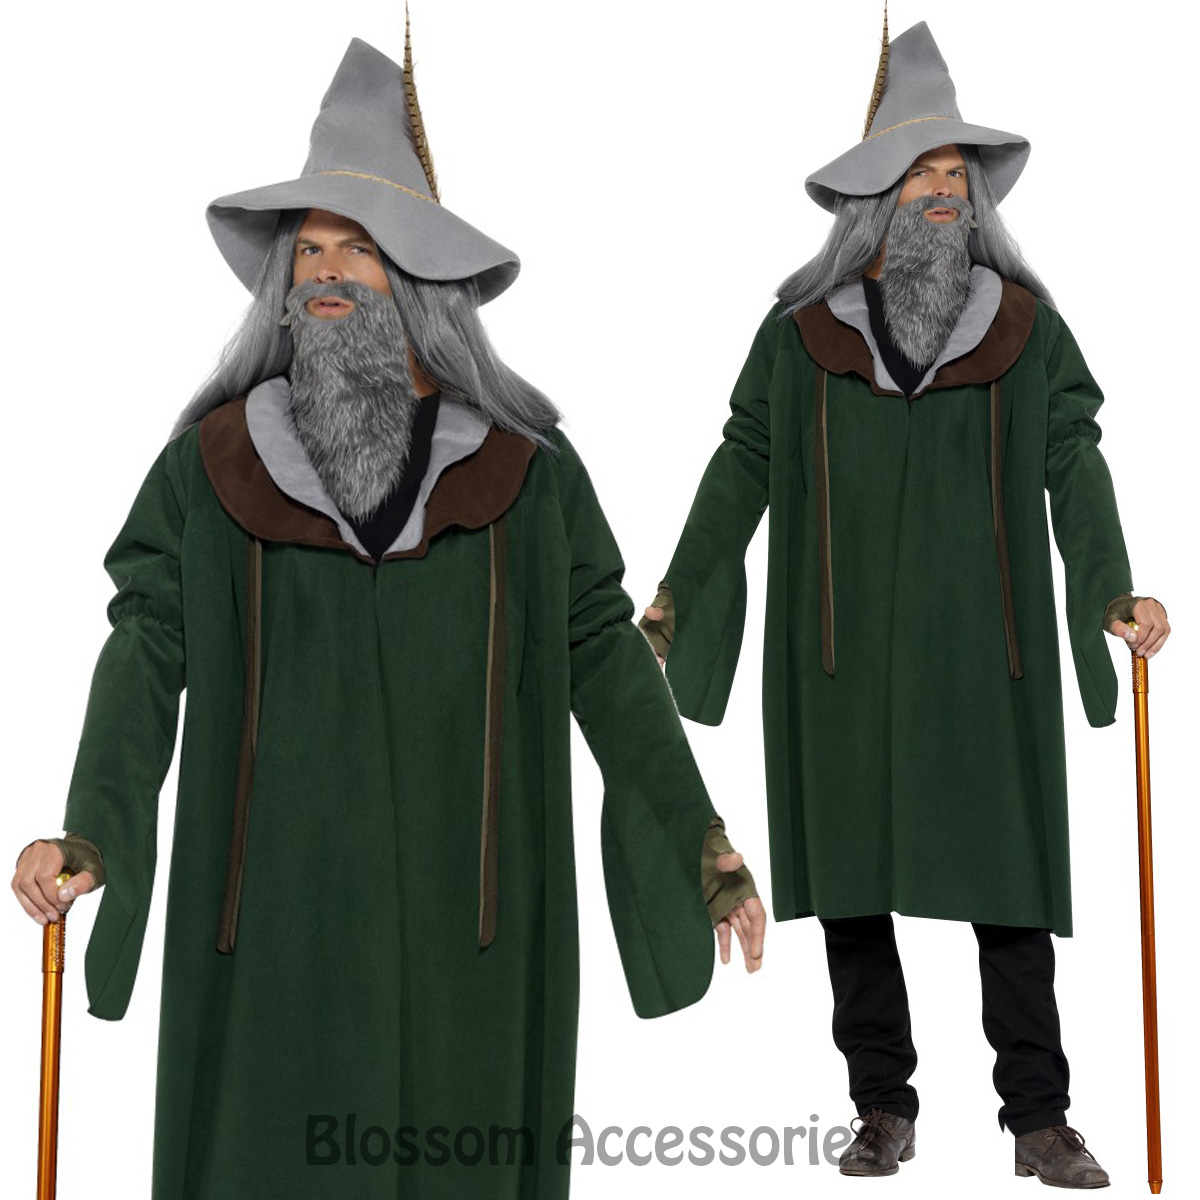 Cl719 wizard of the woods hobbits gandalf lord of the rings merlin image is loading cl719 wizard of the woods hobbits gandalf lord solutioingenieria Images